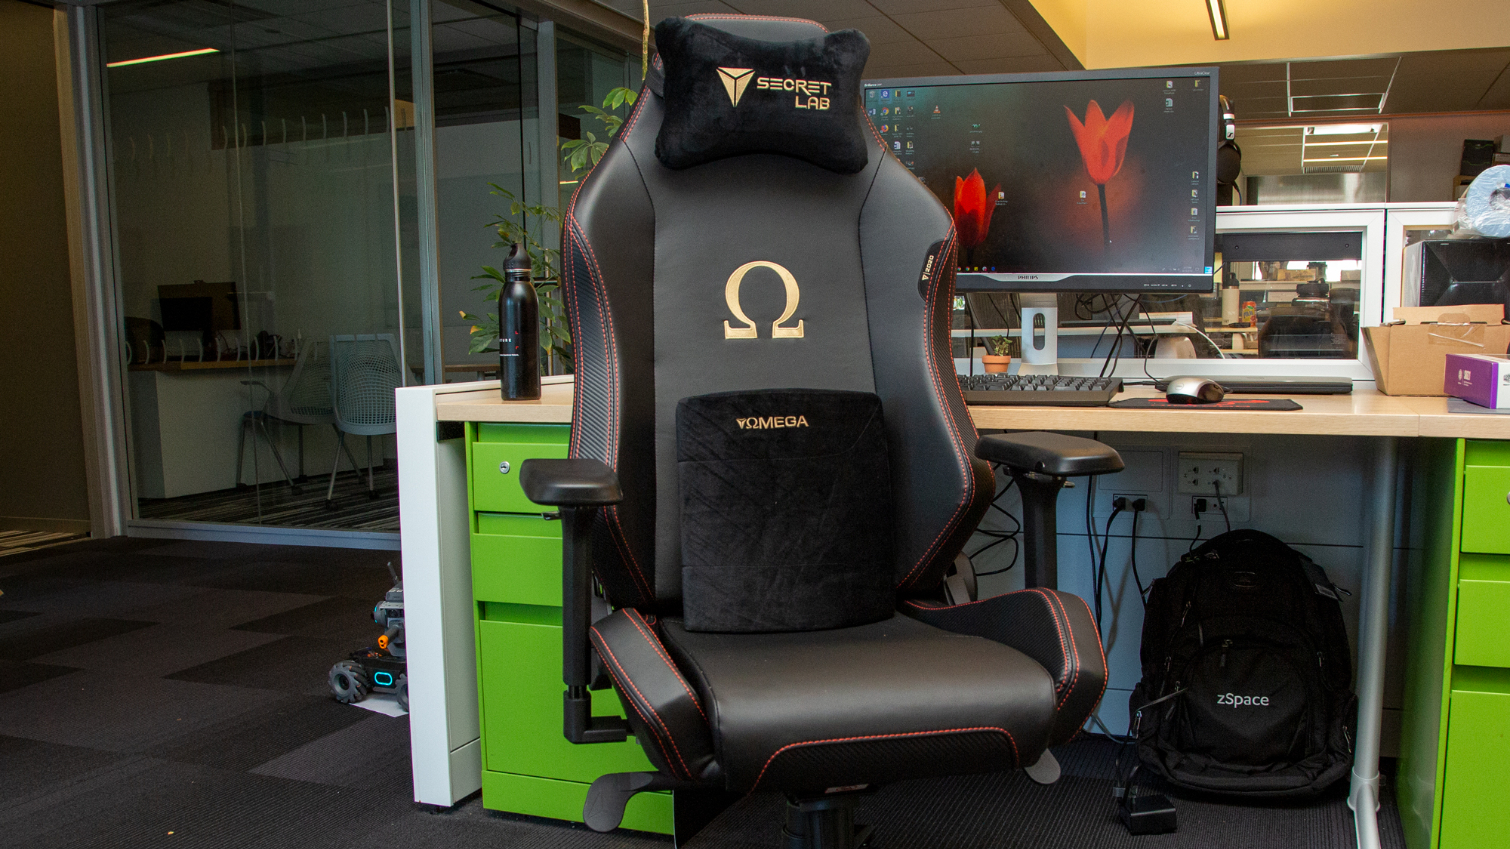 Surprising Secretlab Omega 2020 Gaming Chair Review All Day Comfort Cjindustries Chair Design For Home Cjindustriesco